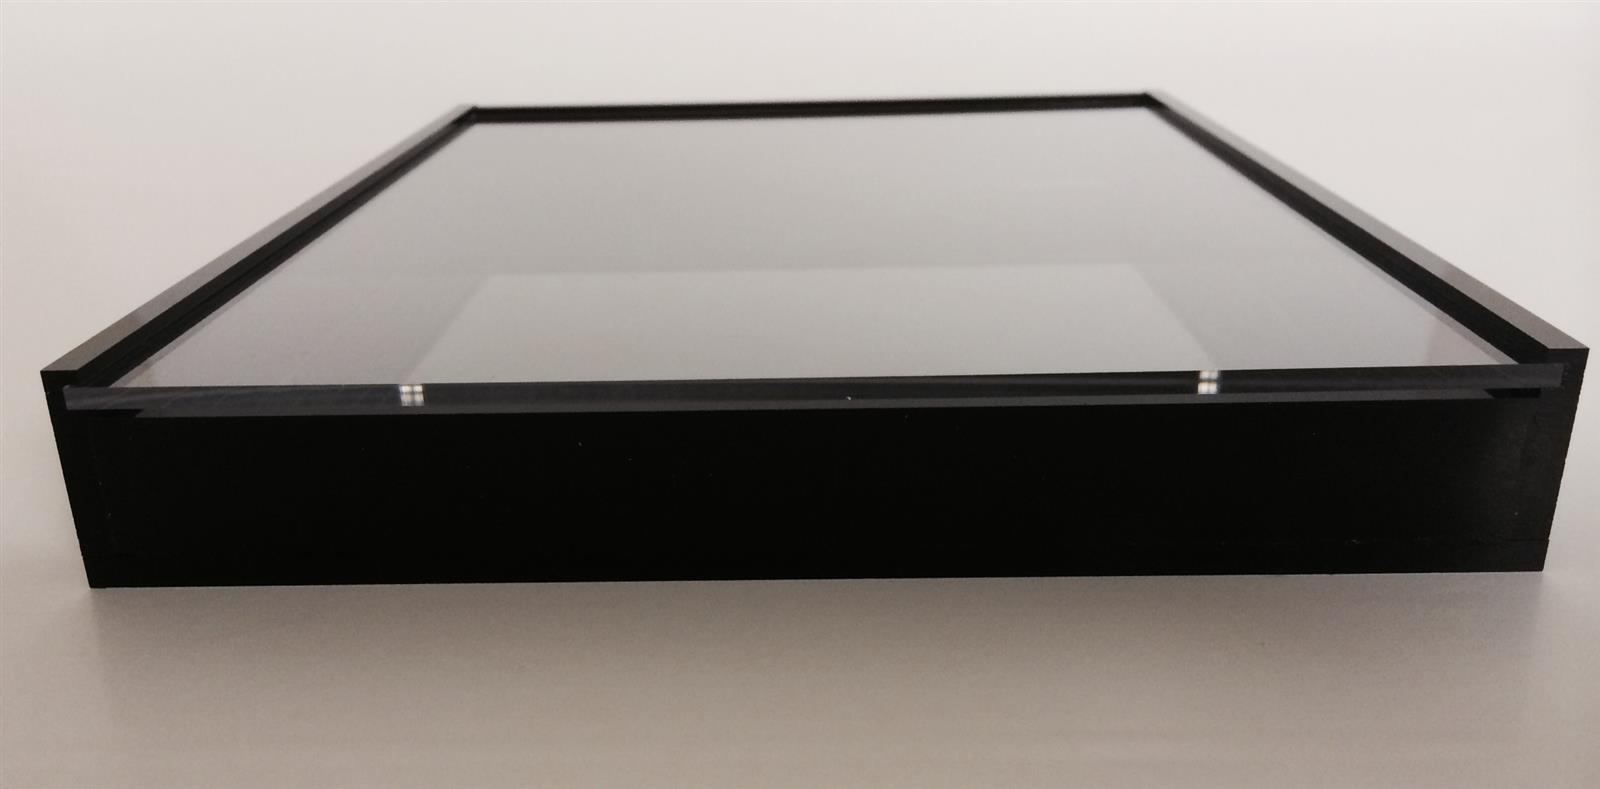 Acrylic Display Case with Sliding Front Cover